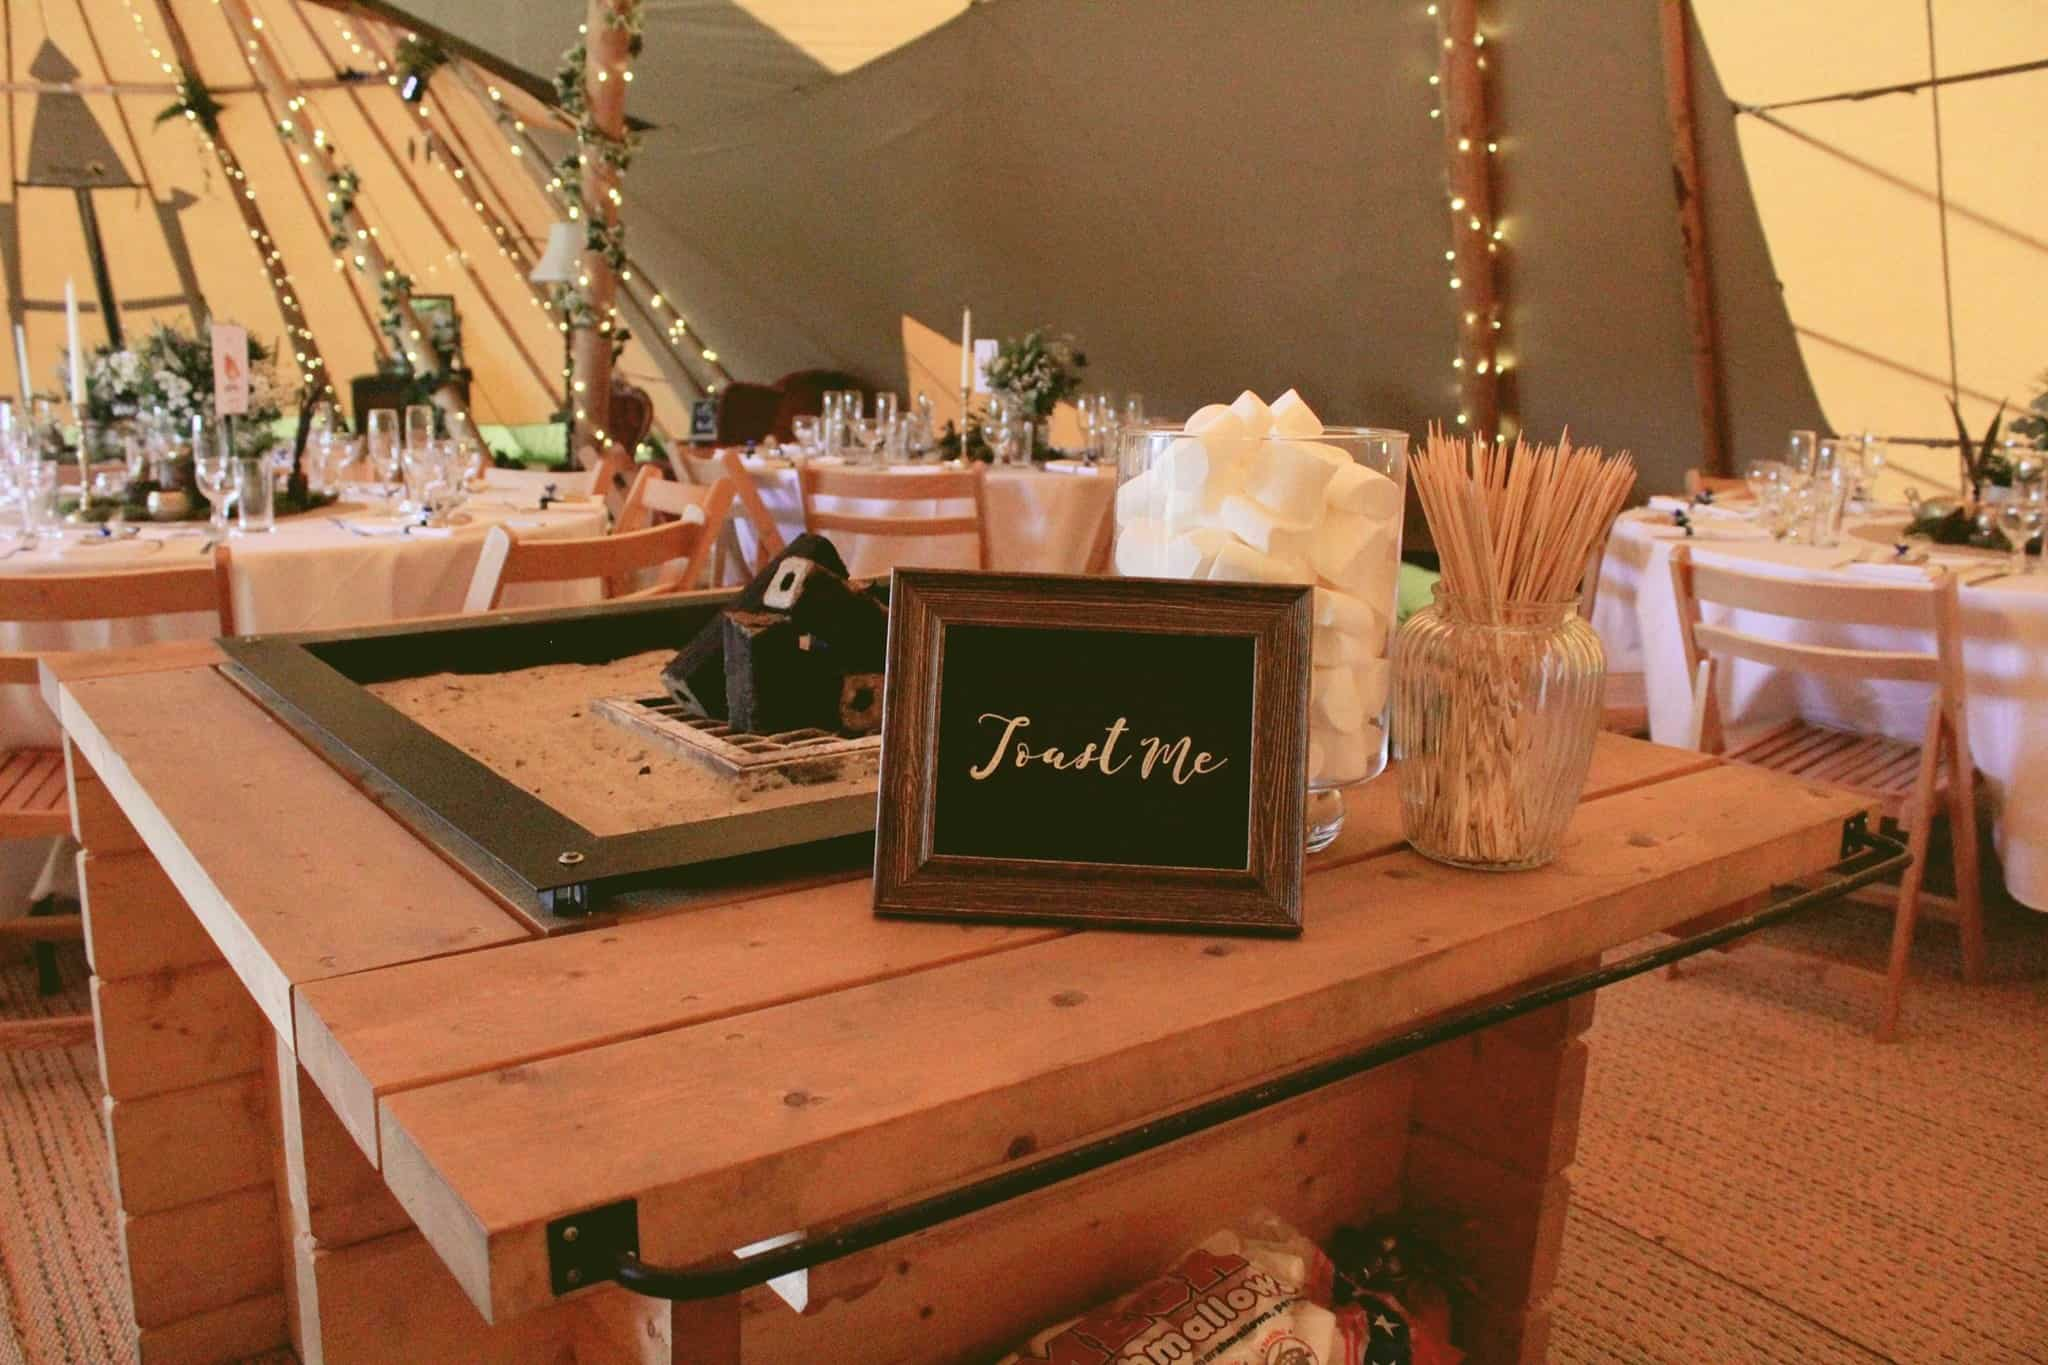 Open Fire Place - Woodland themed styling by The Rustic Wedding Company